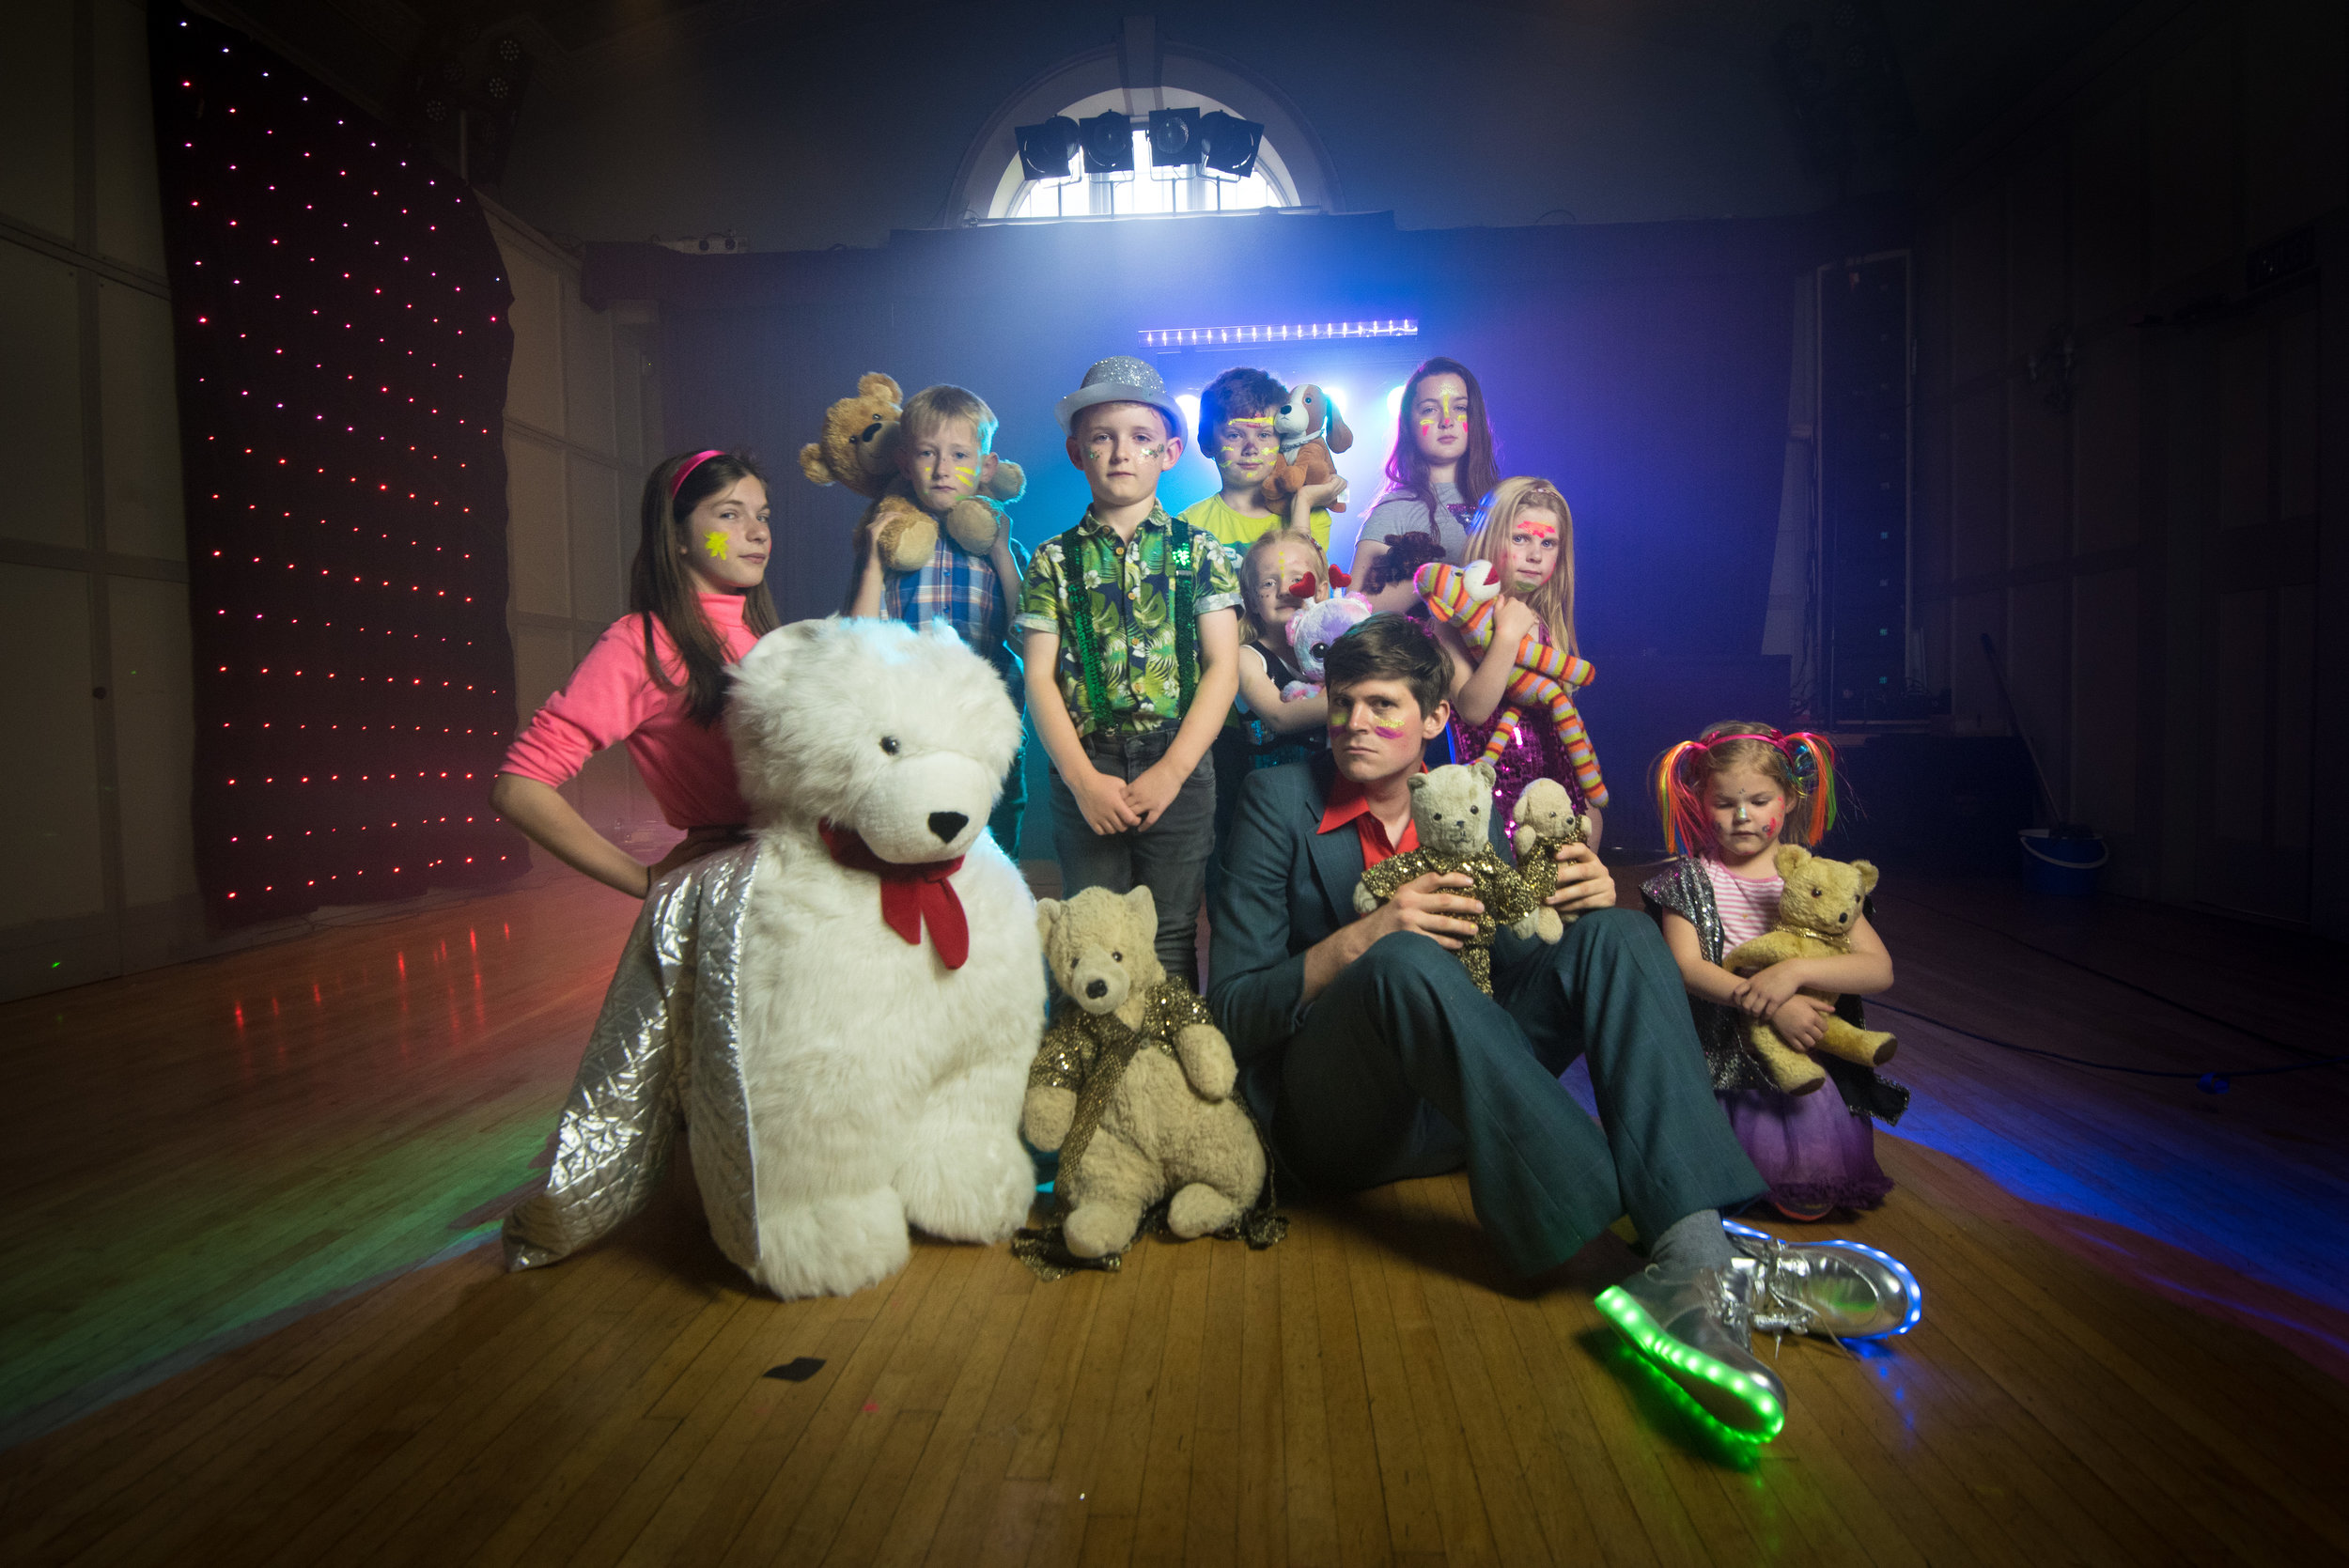 Making serious disco faces with my teddy bear crew.